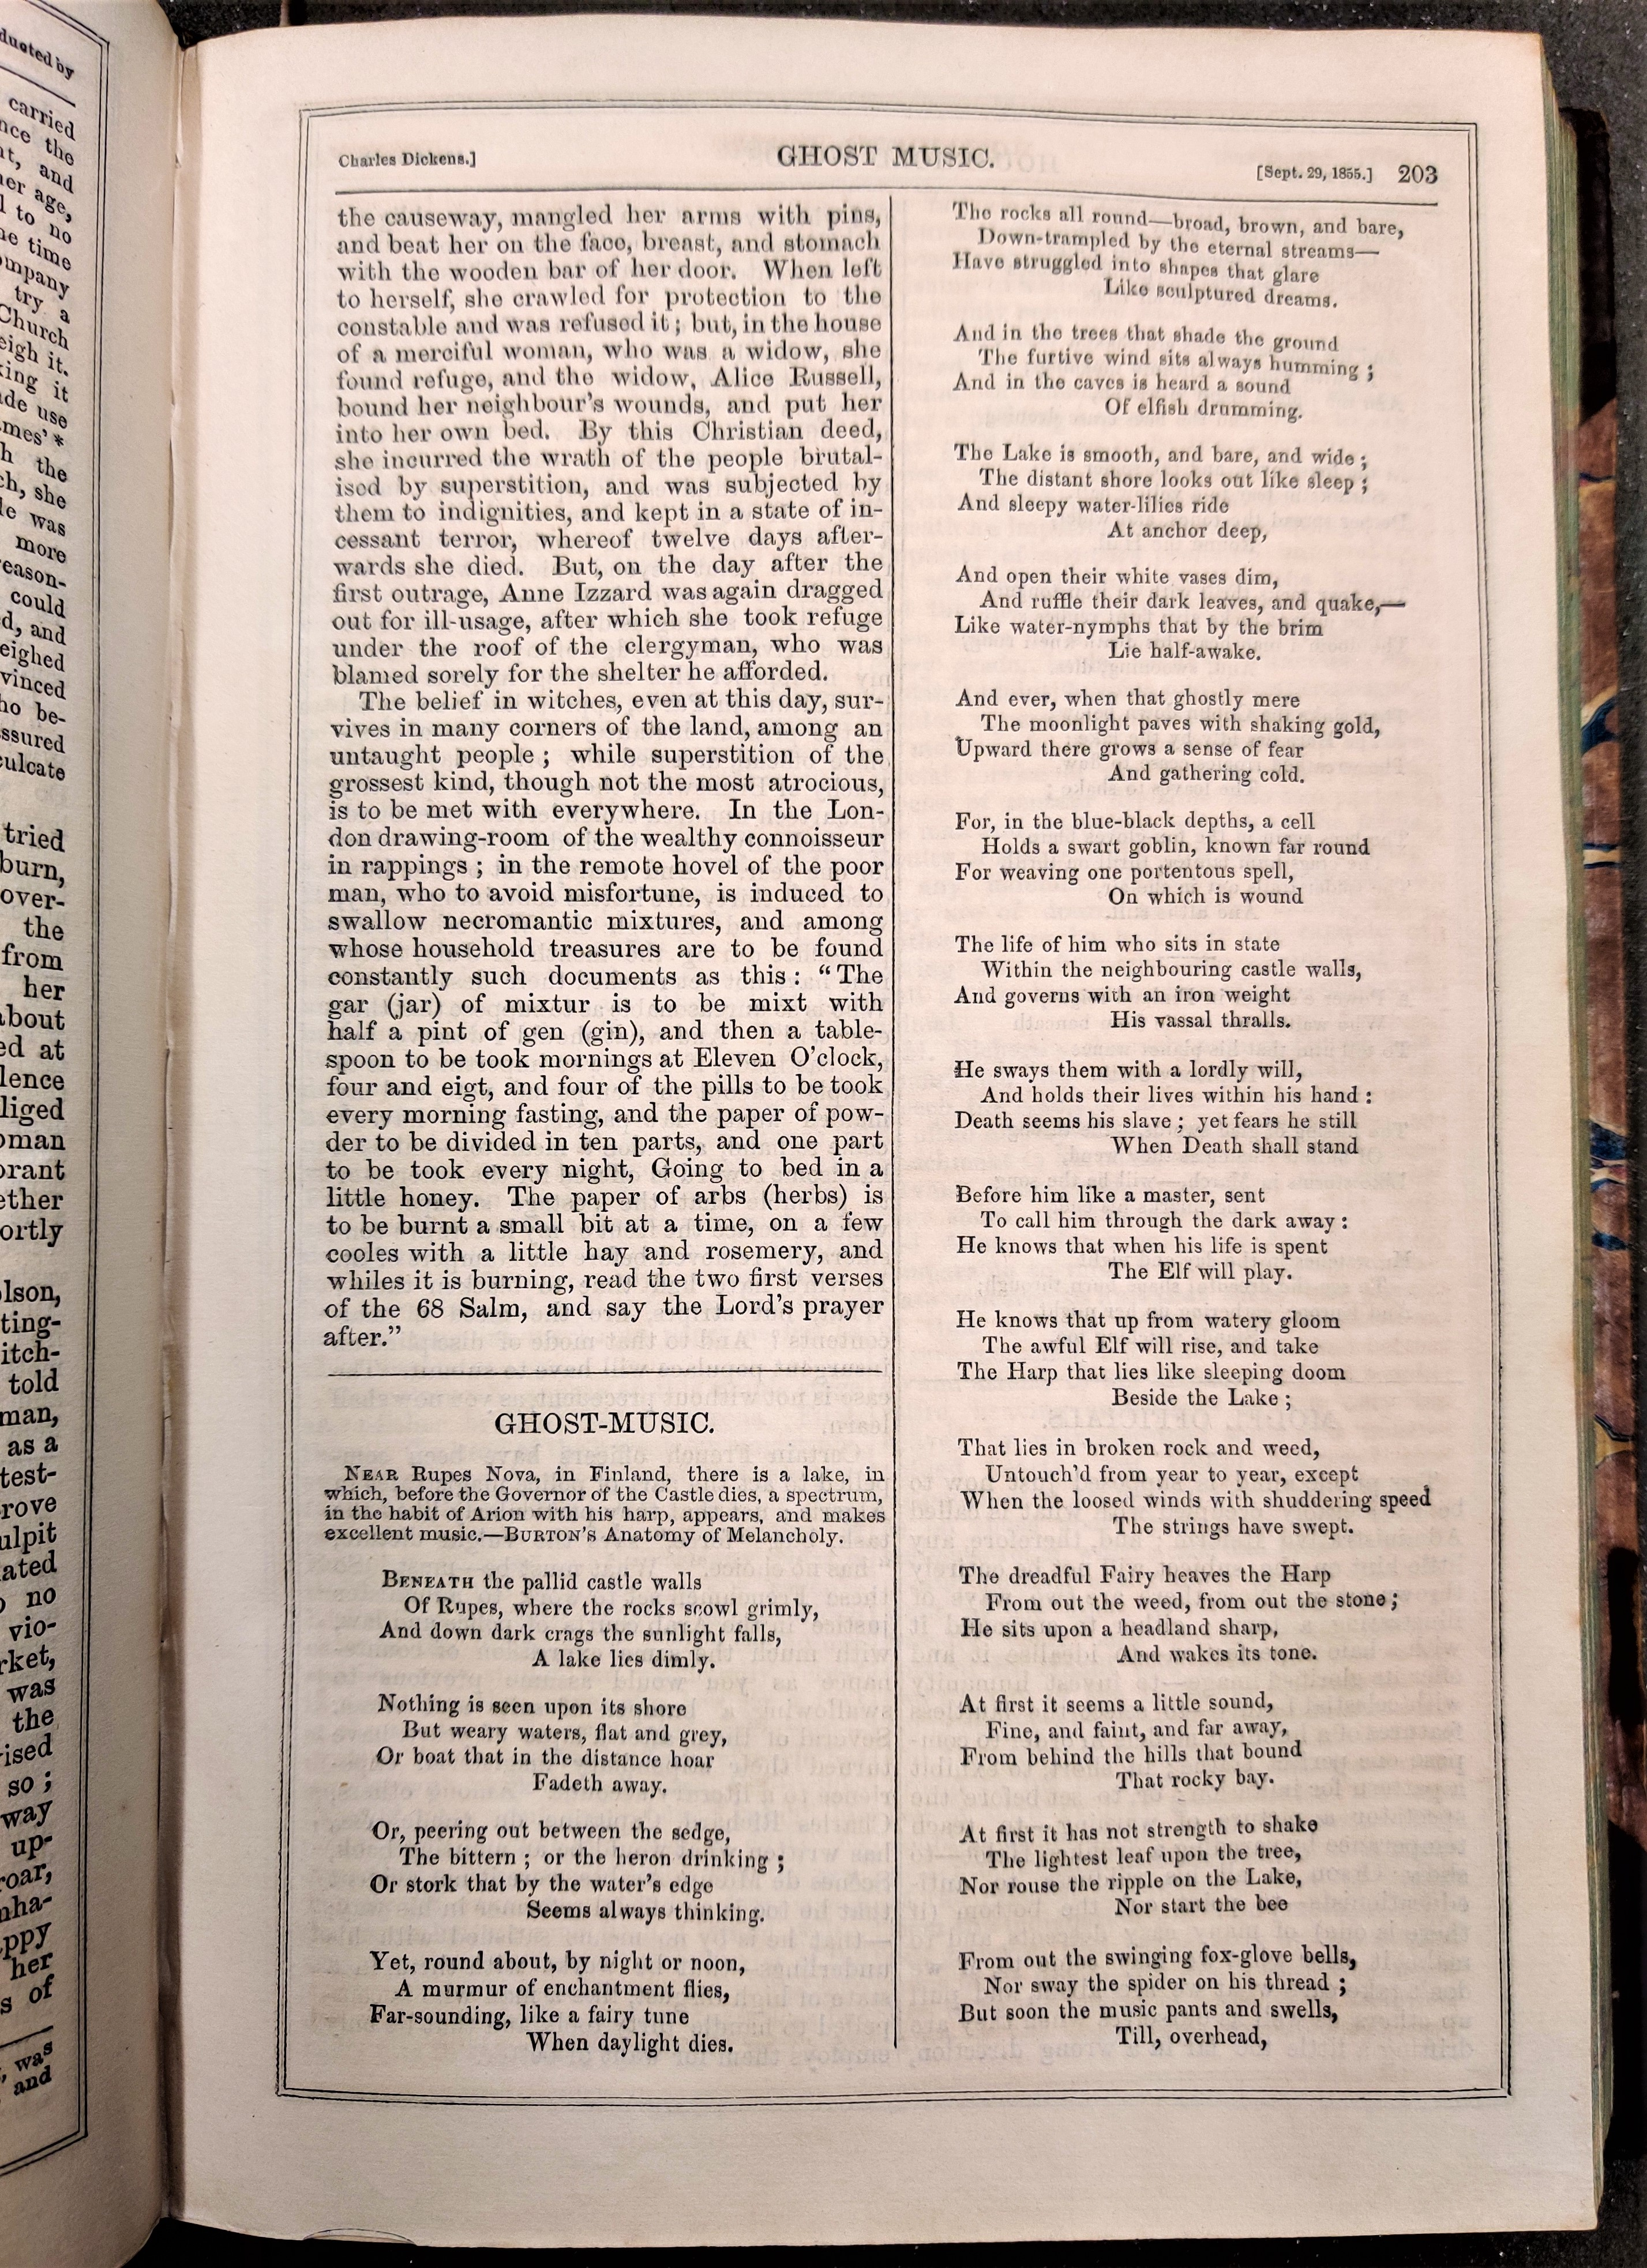 Ghost-Music, a poem by Edmund Ollier, published in Household Words, September 29 1855.